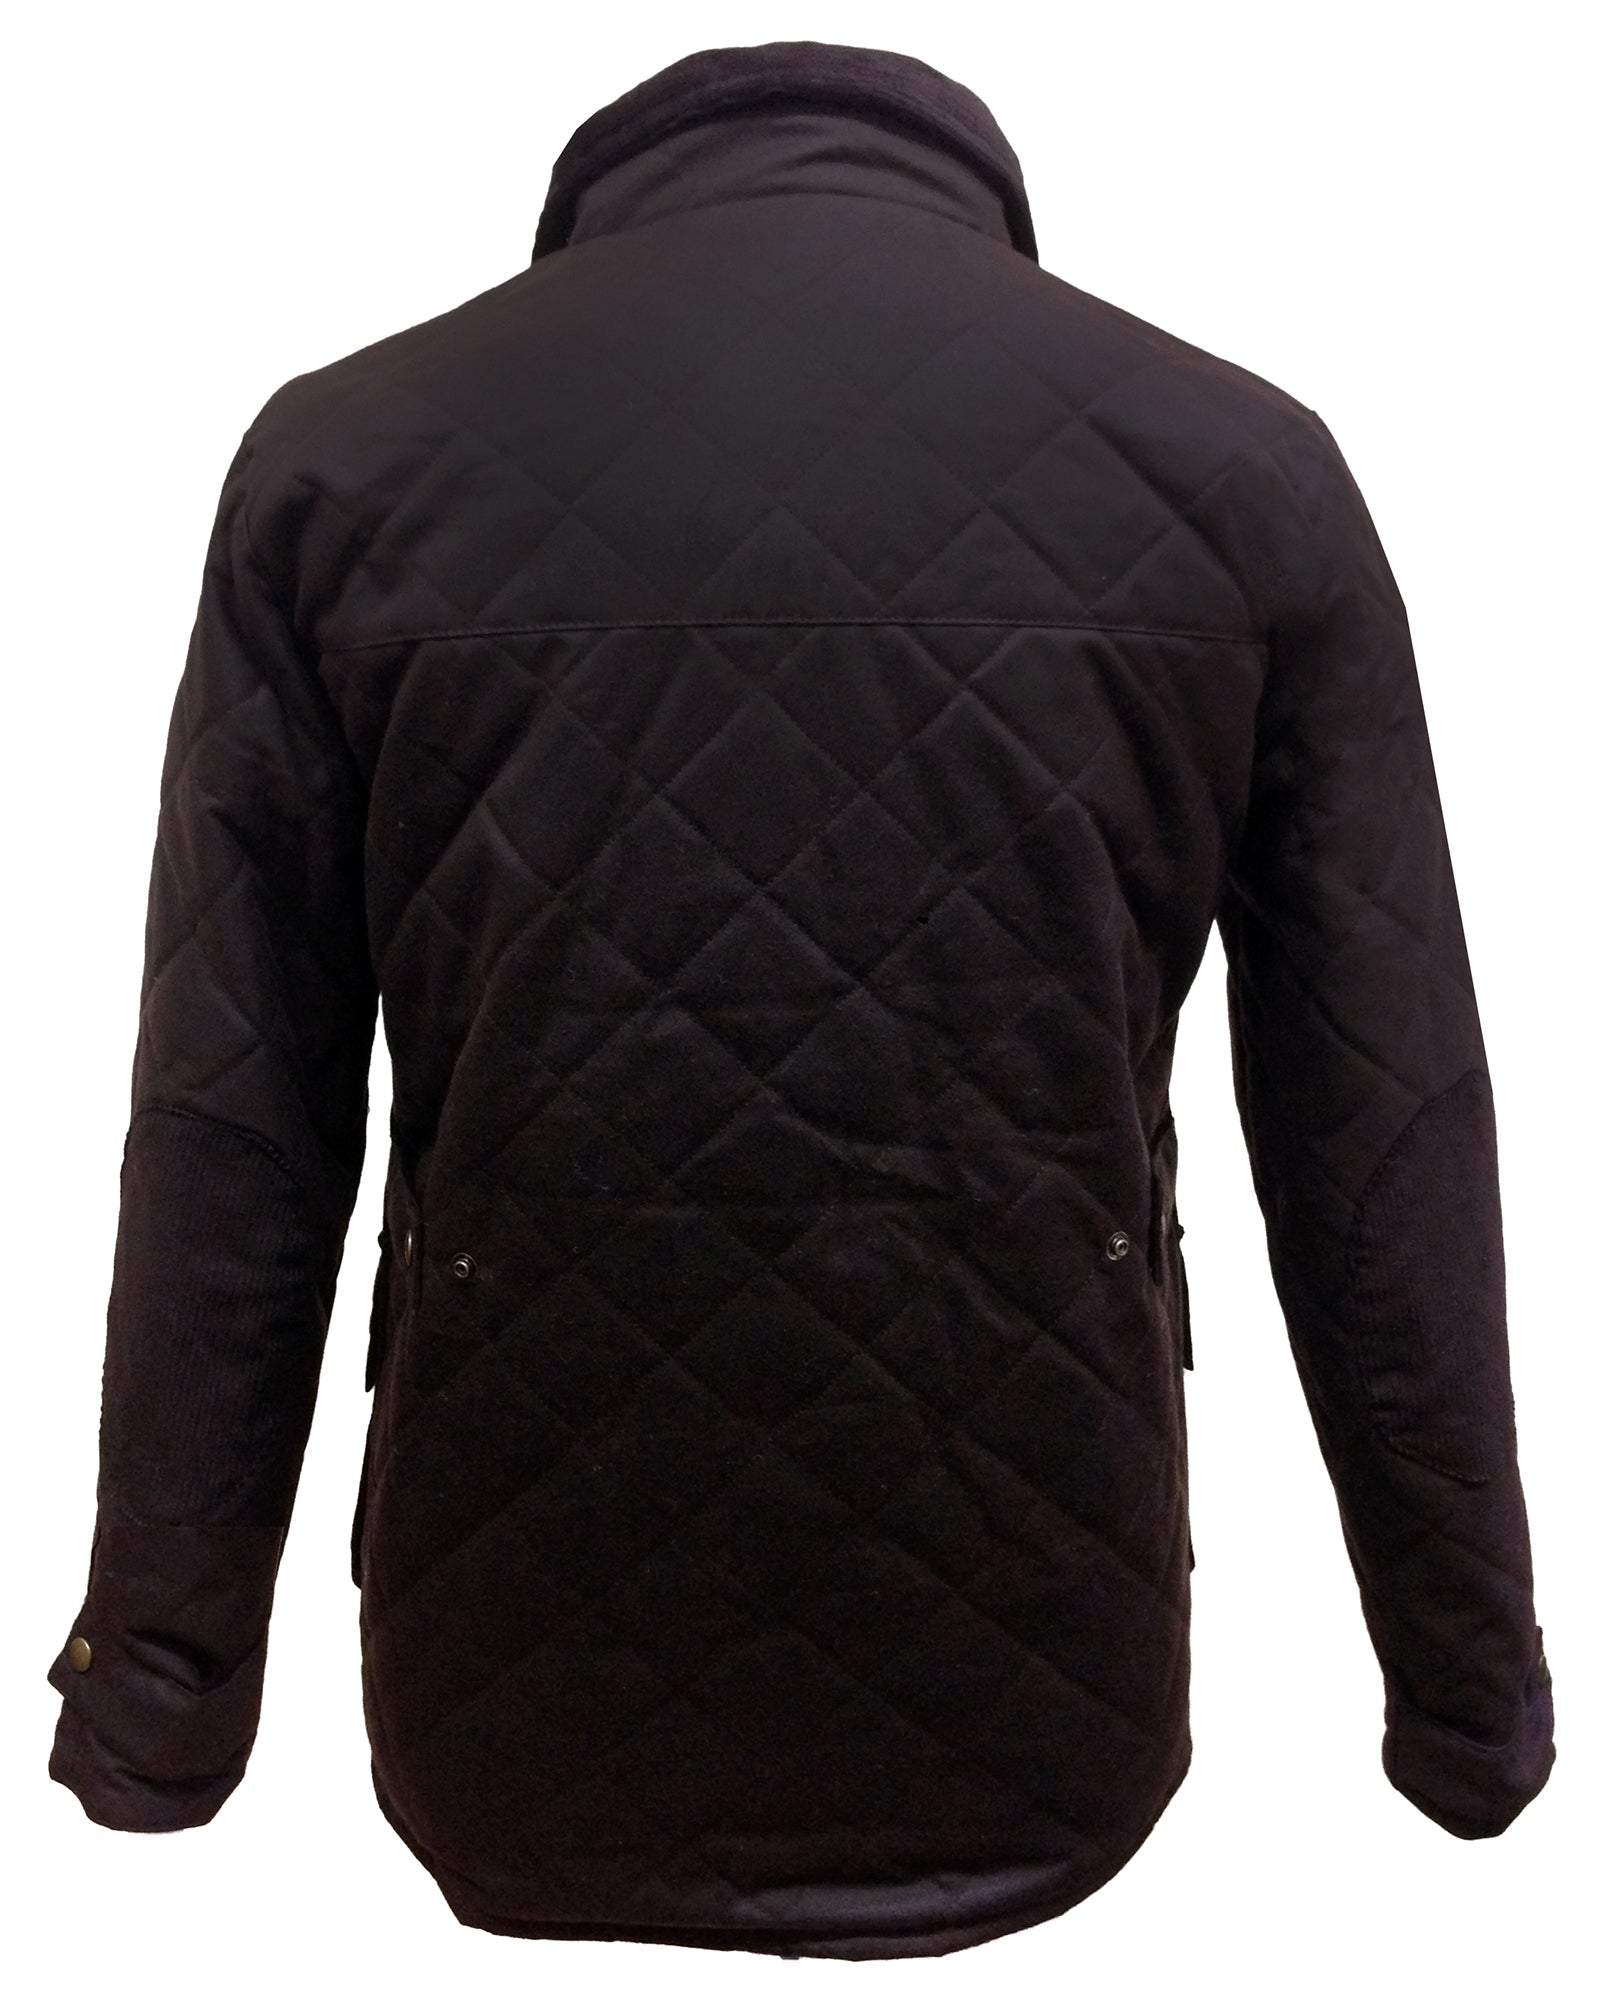 Regents View Men Premium Diamond Quilted Wax Cotton Jacket - Brown